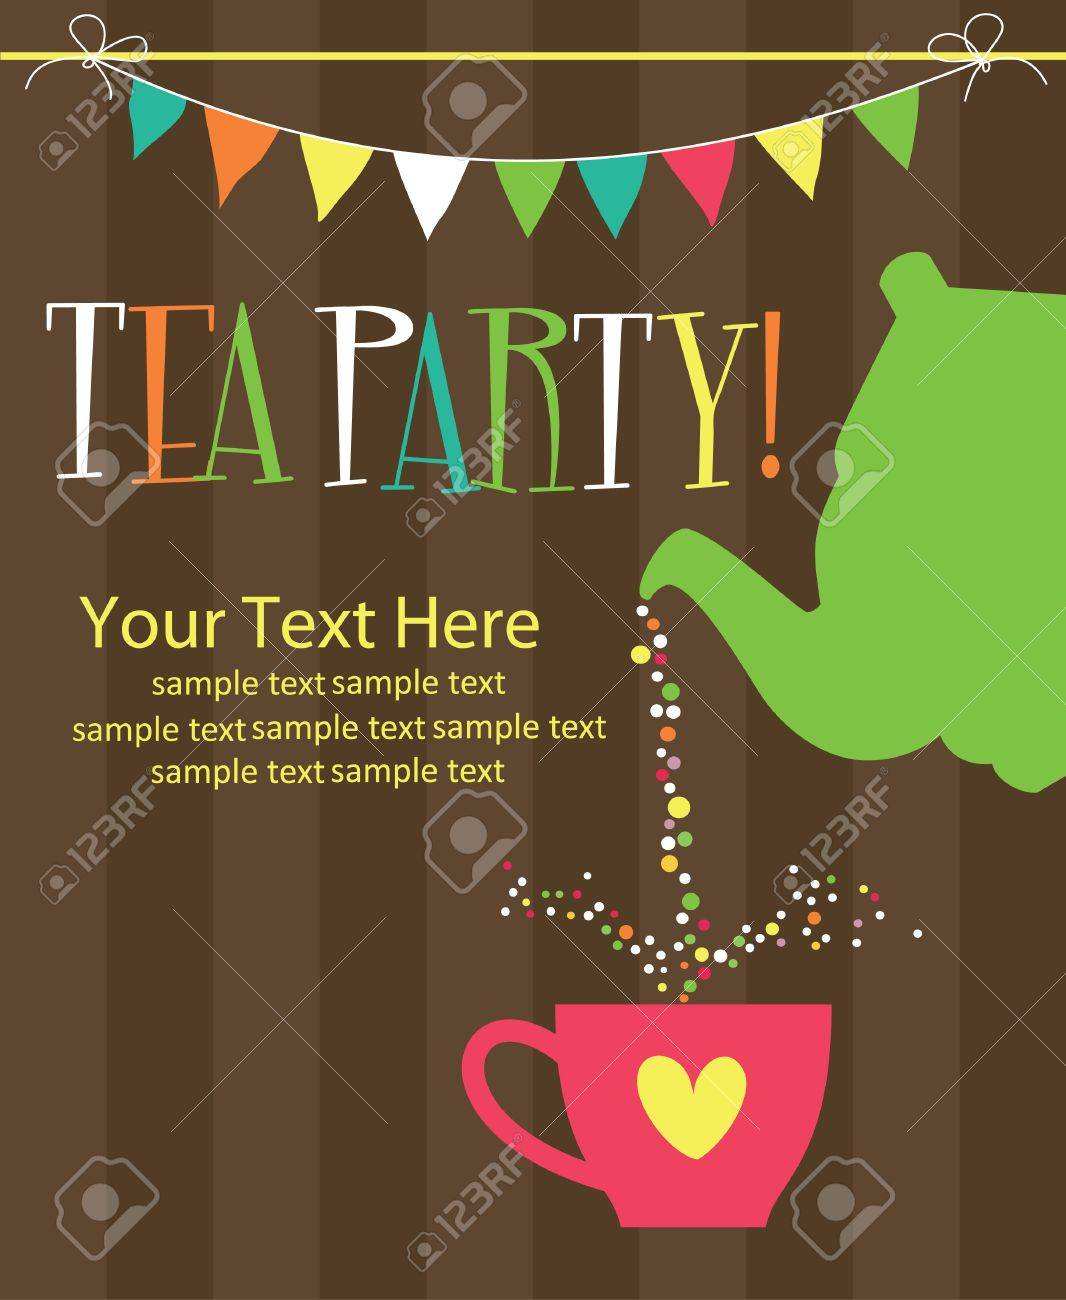 Tea Party Card Design Vector Illustration Royalty Free Cliparts – Party Invitation Card Design